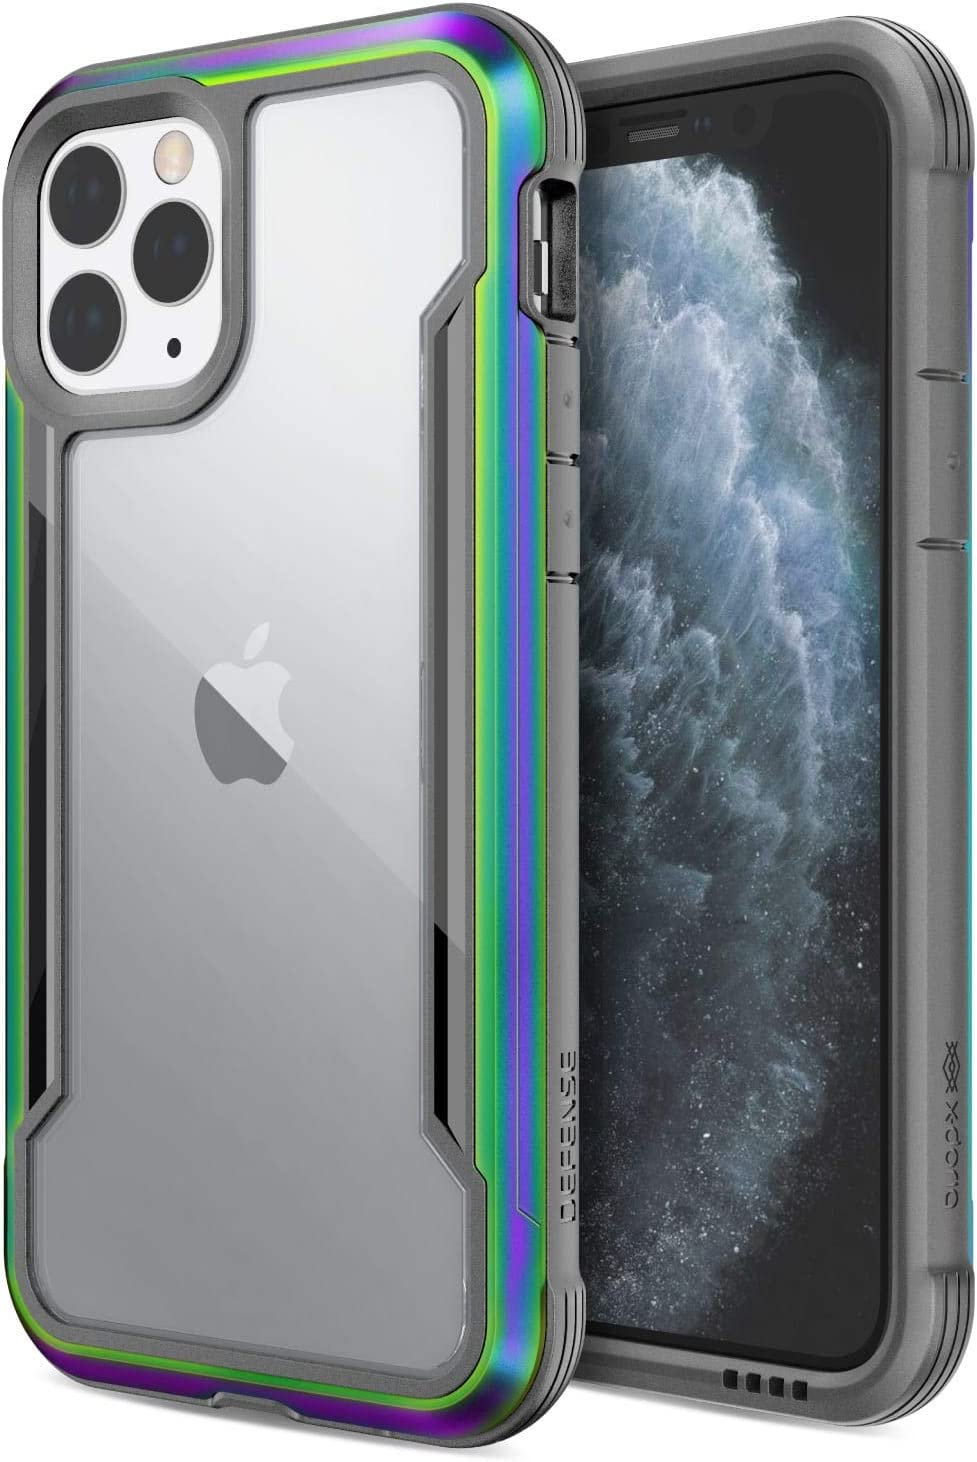 X-Doria Defense Shield, iPhone 11 Pro Case - Military Grade Drop Tested, Anodized Aluminum, TPU, and Polycarbonate Protective Case for Apple 11 Pro, (Iridescent)